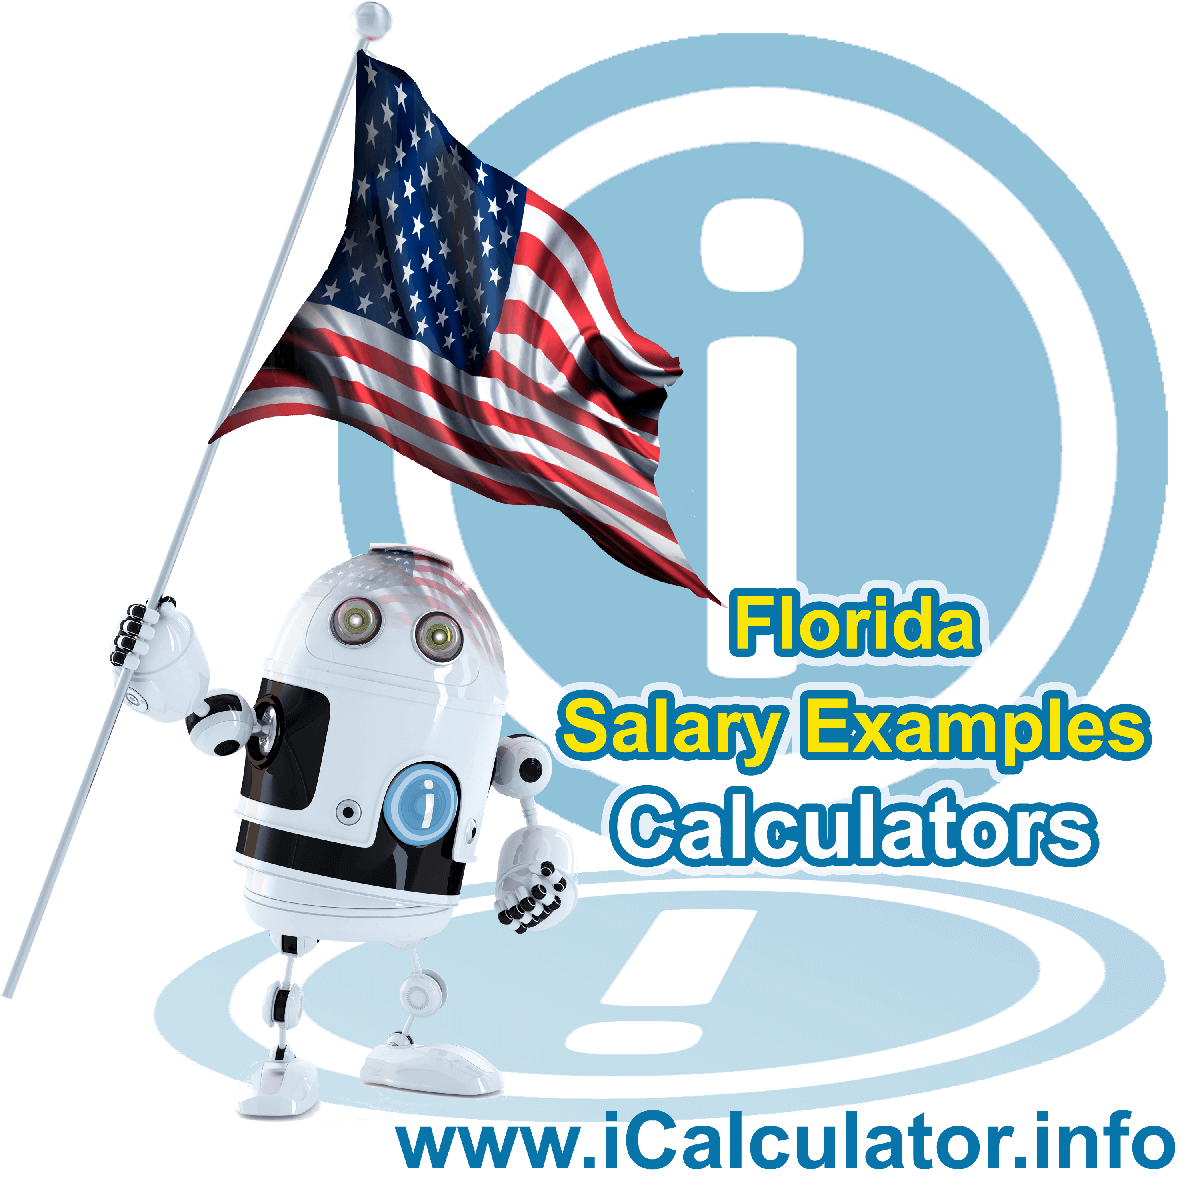 Florida Salary Example for $135,000.00 in 2021 | iCalculator™ | $135,000.00 salary example for employee and employer paying Florida State tincome taxes. Detailed salary after tax calculation including Florida State Tax, Federal State Tax, Medicare Deductions, Social Security, Capital Gains and other income tax and salary deductions complete with supporting Florida state tax tables